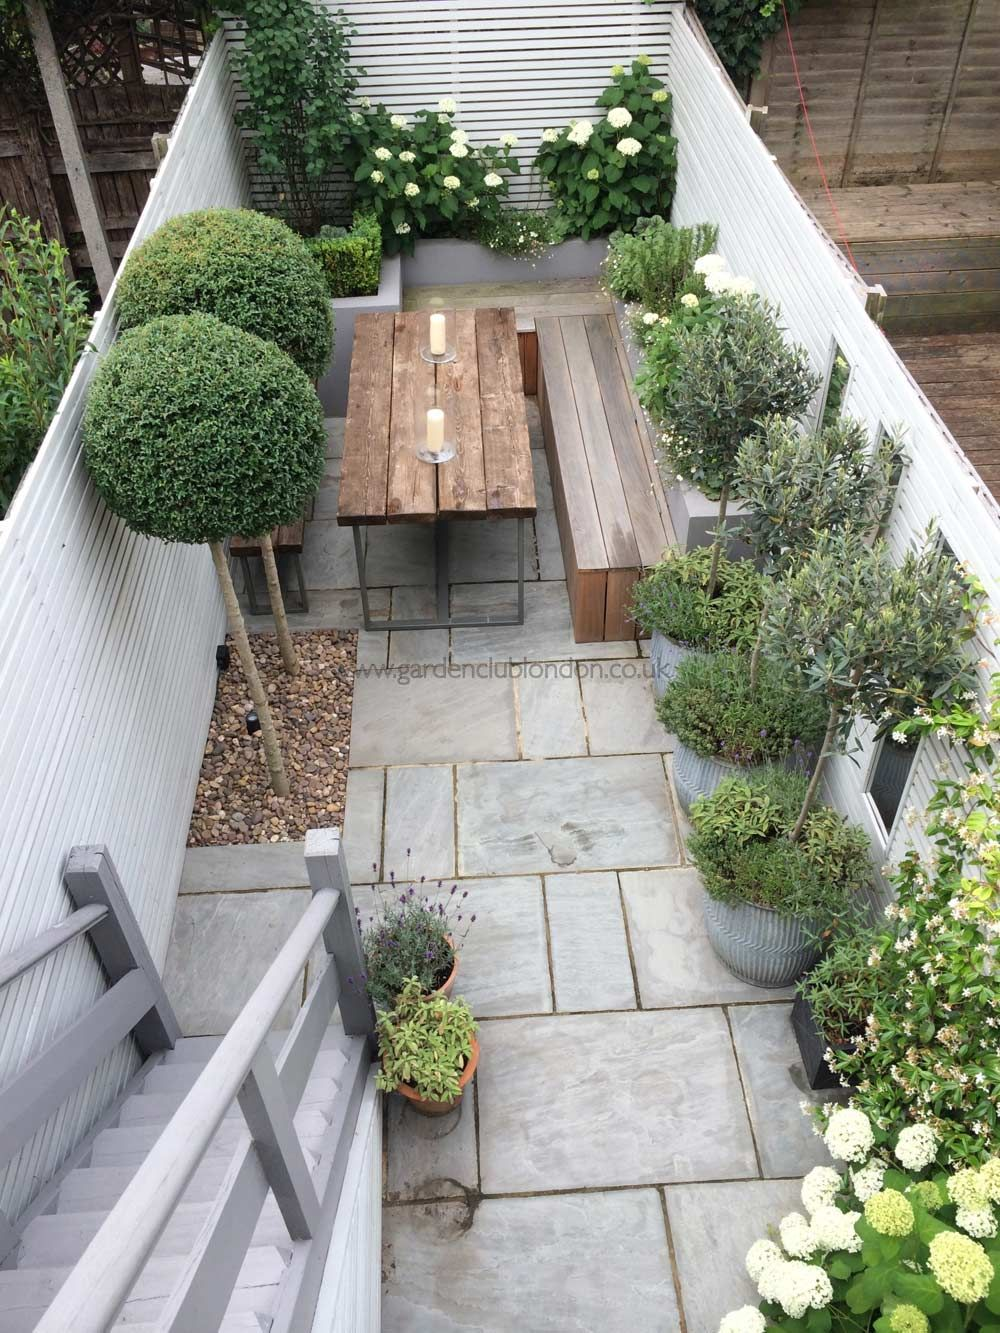 40 Garden Ideas for a Small Backyard | Сад | Pinterest ...